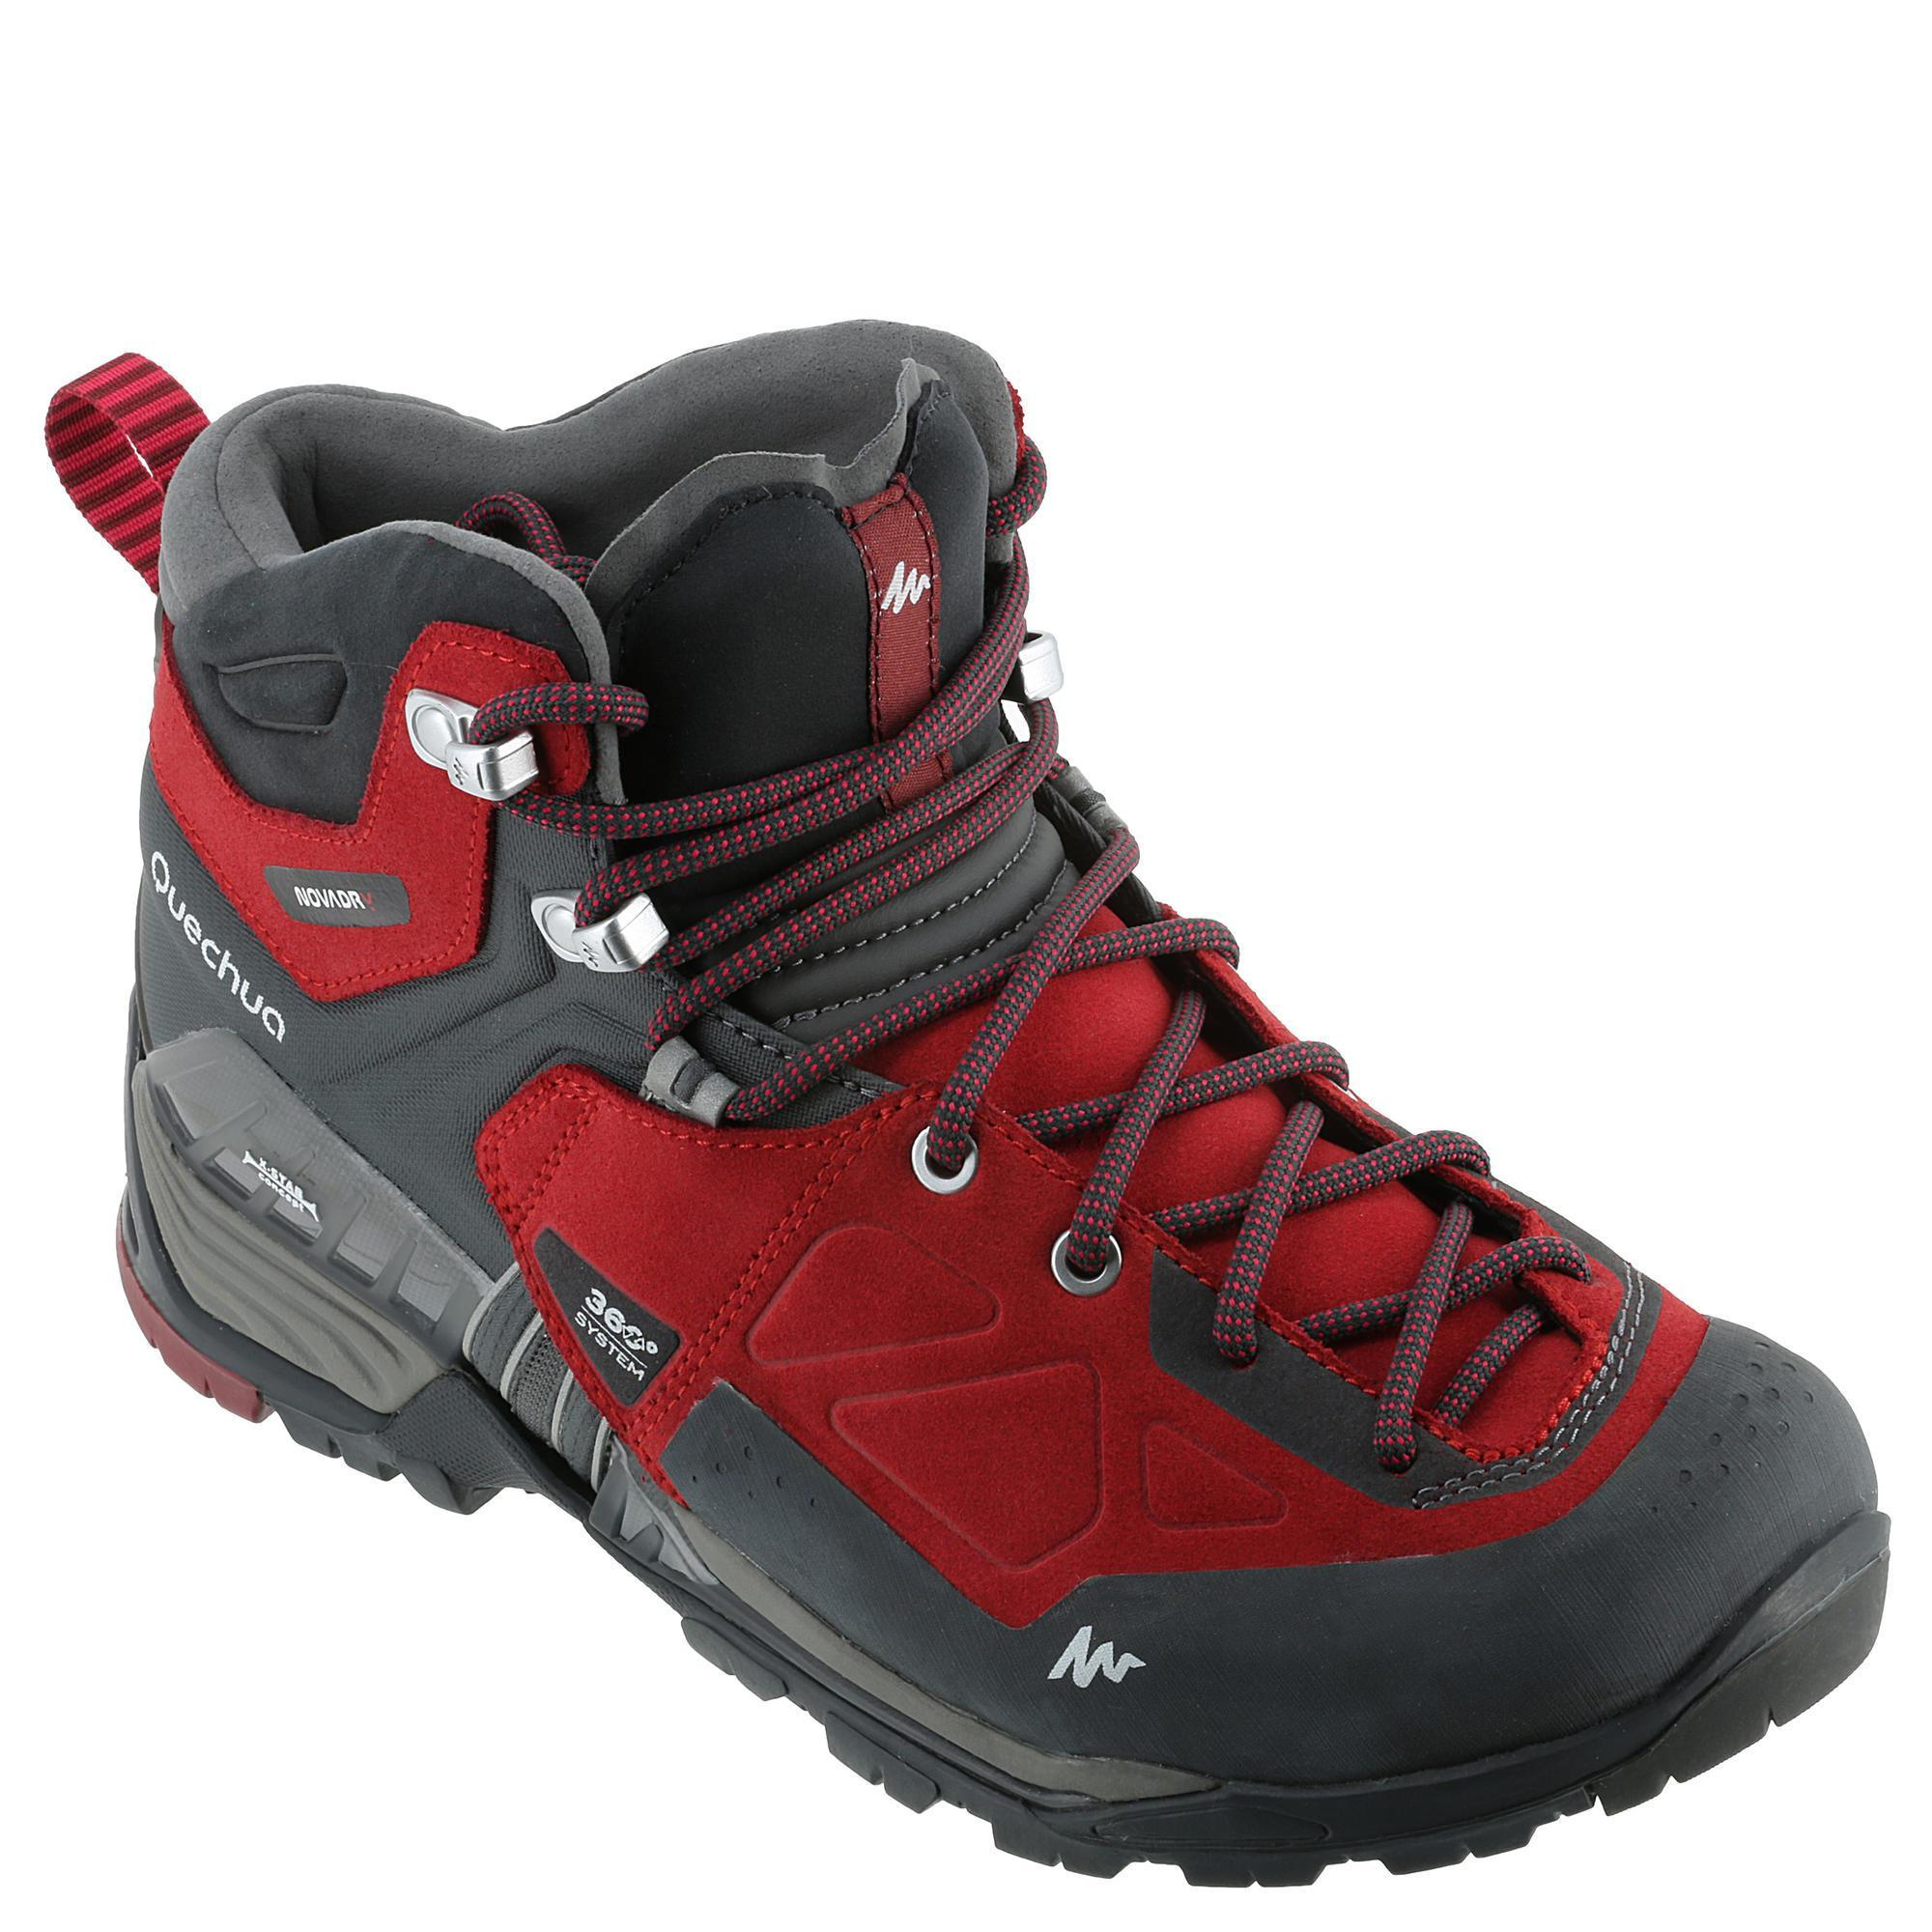 Forclaz 700 Mid Wtp Mountain Hiking Shoes Red Quechua